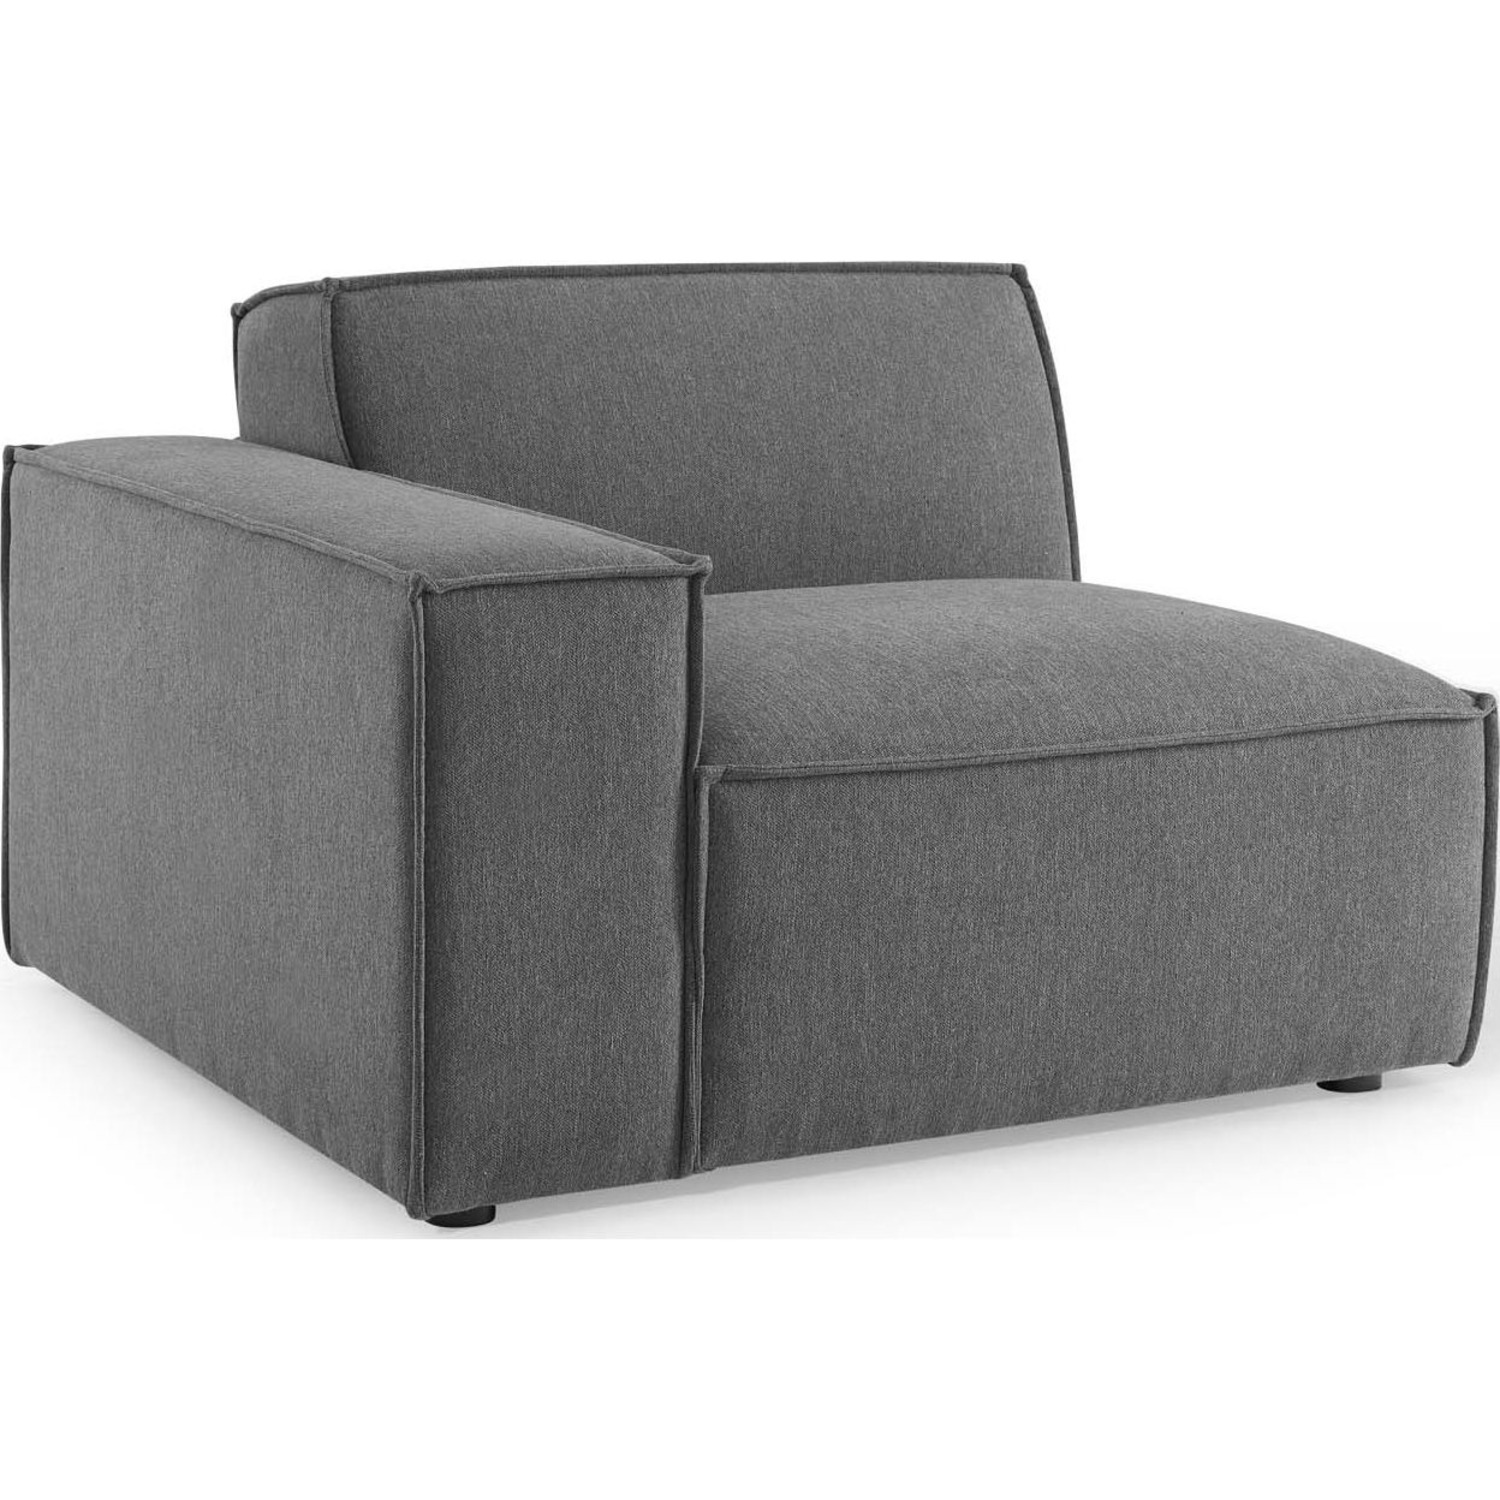 4-Piece Sectional Sofa In Charcoal Fabric - image-4